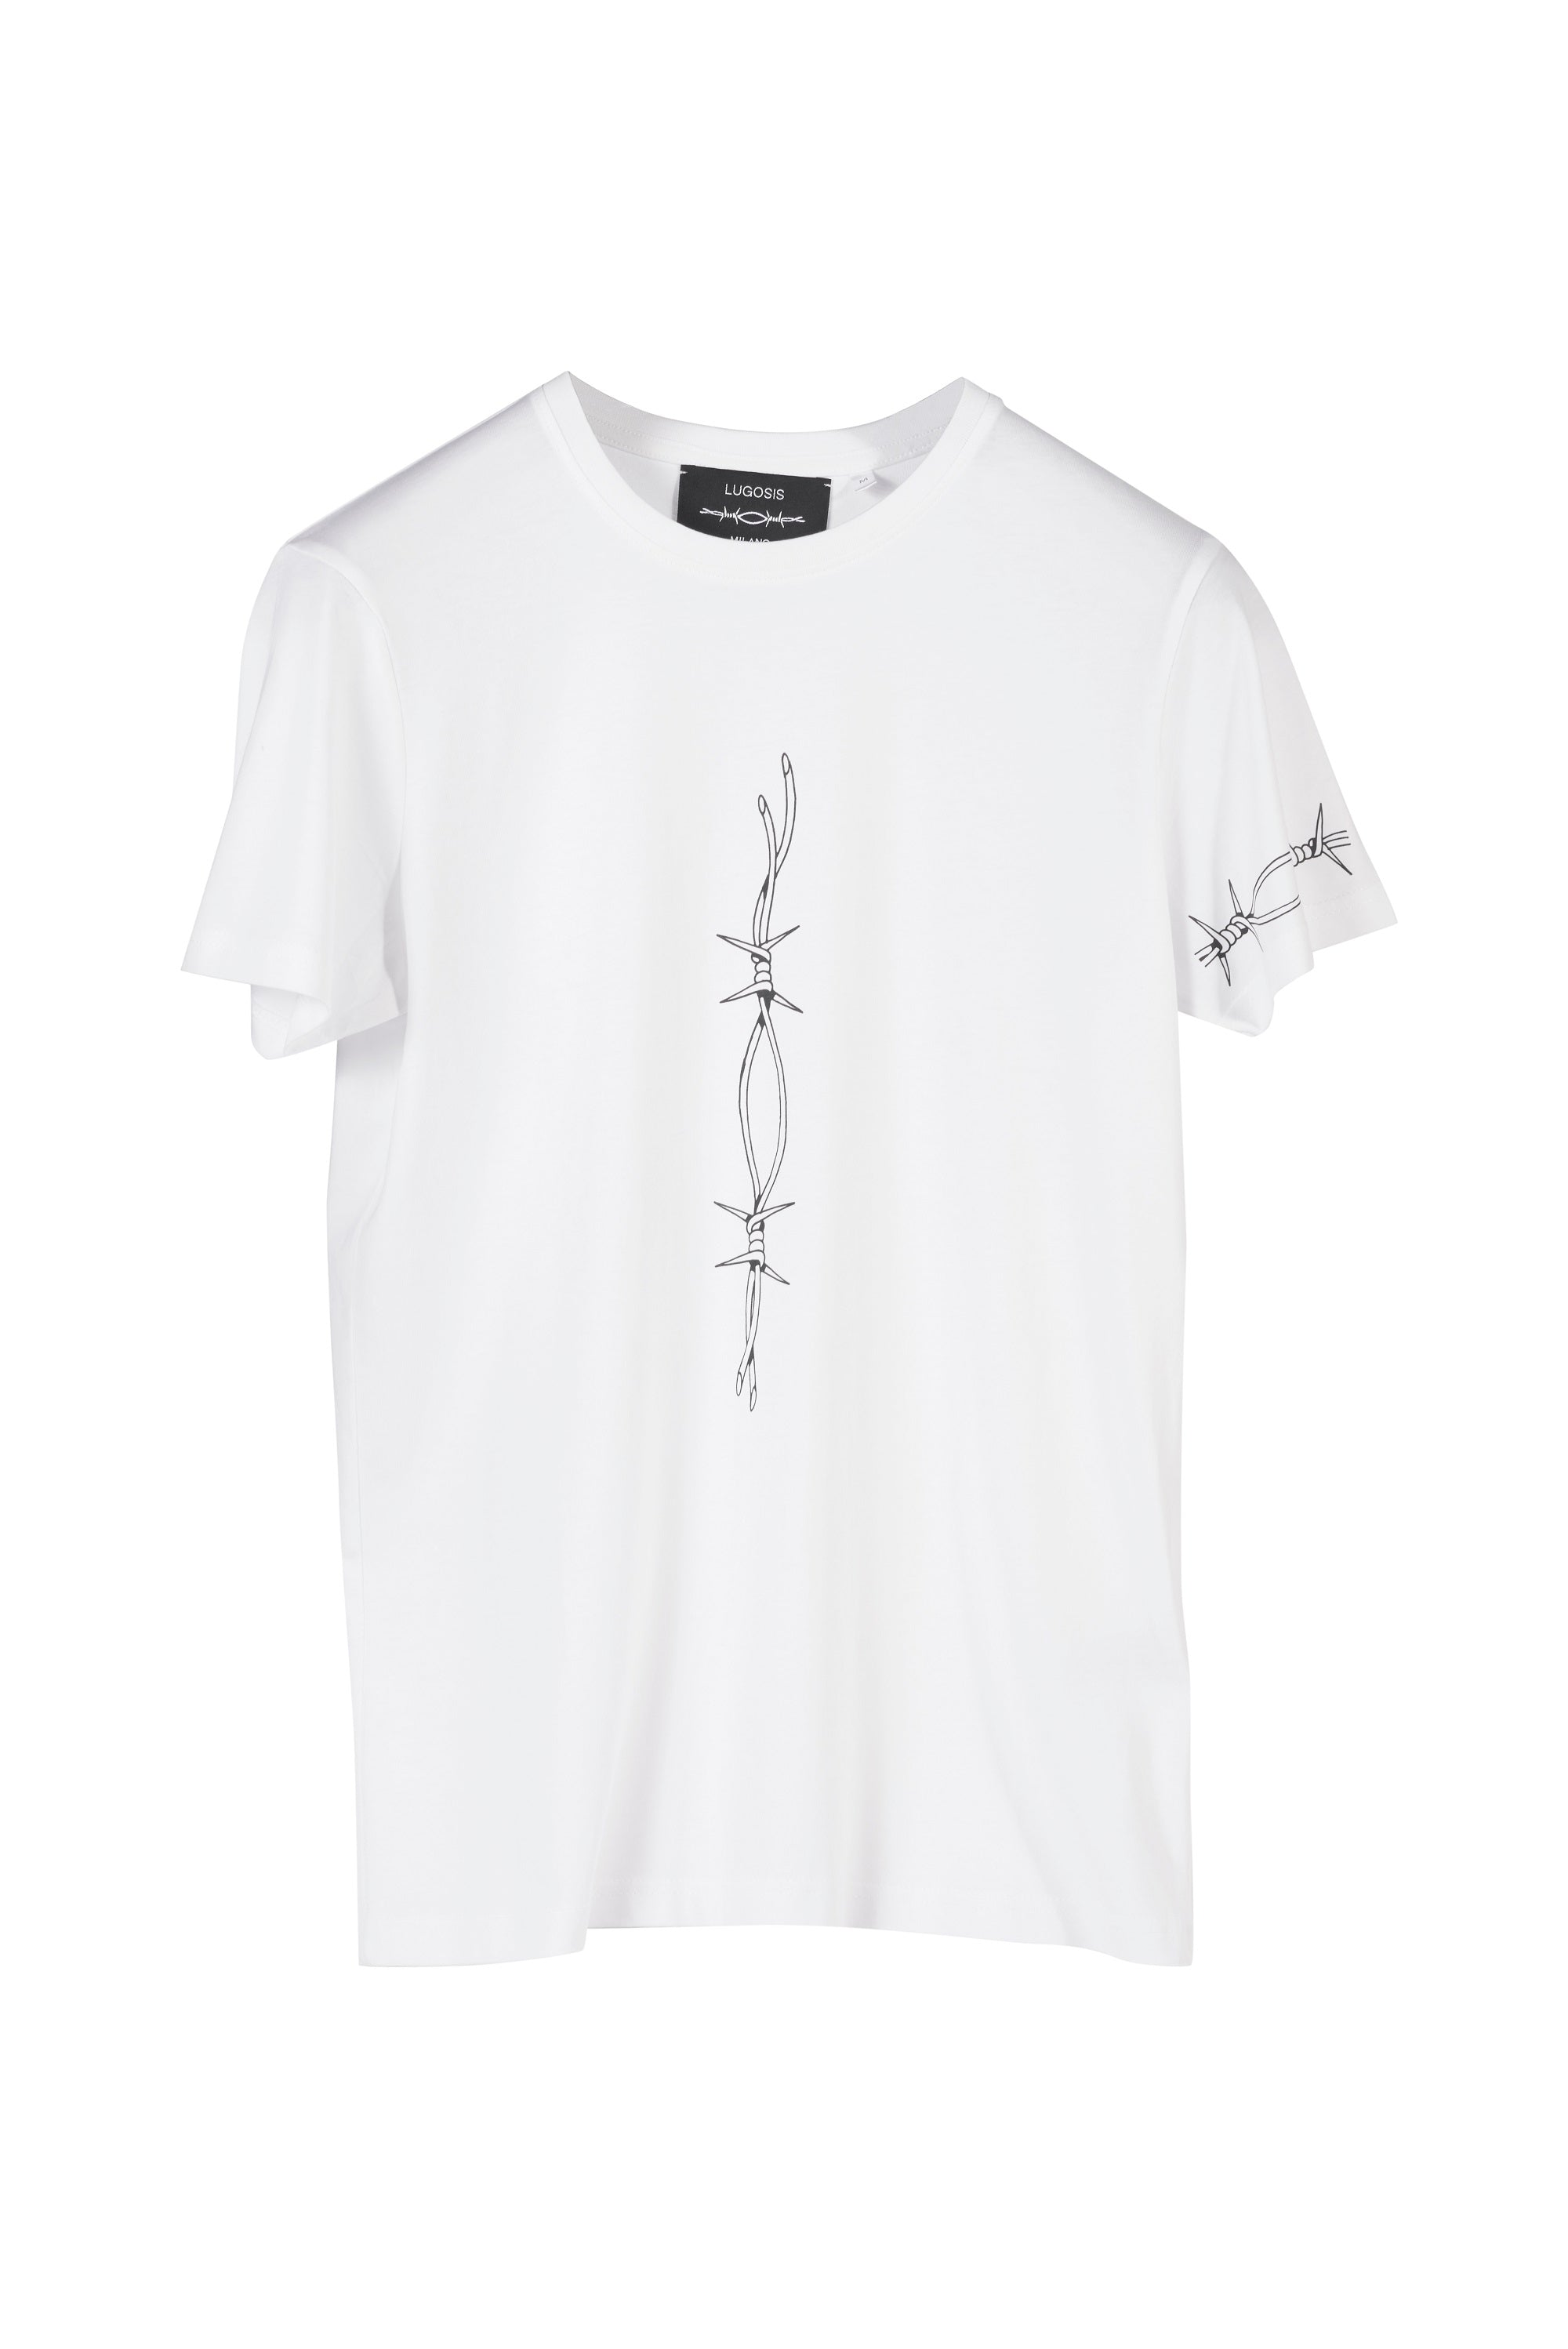 "Lugosis T-Shirt ""Metal Wire"""